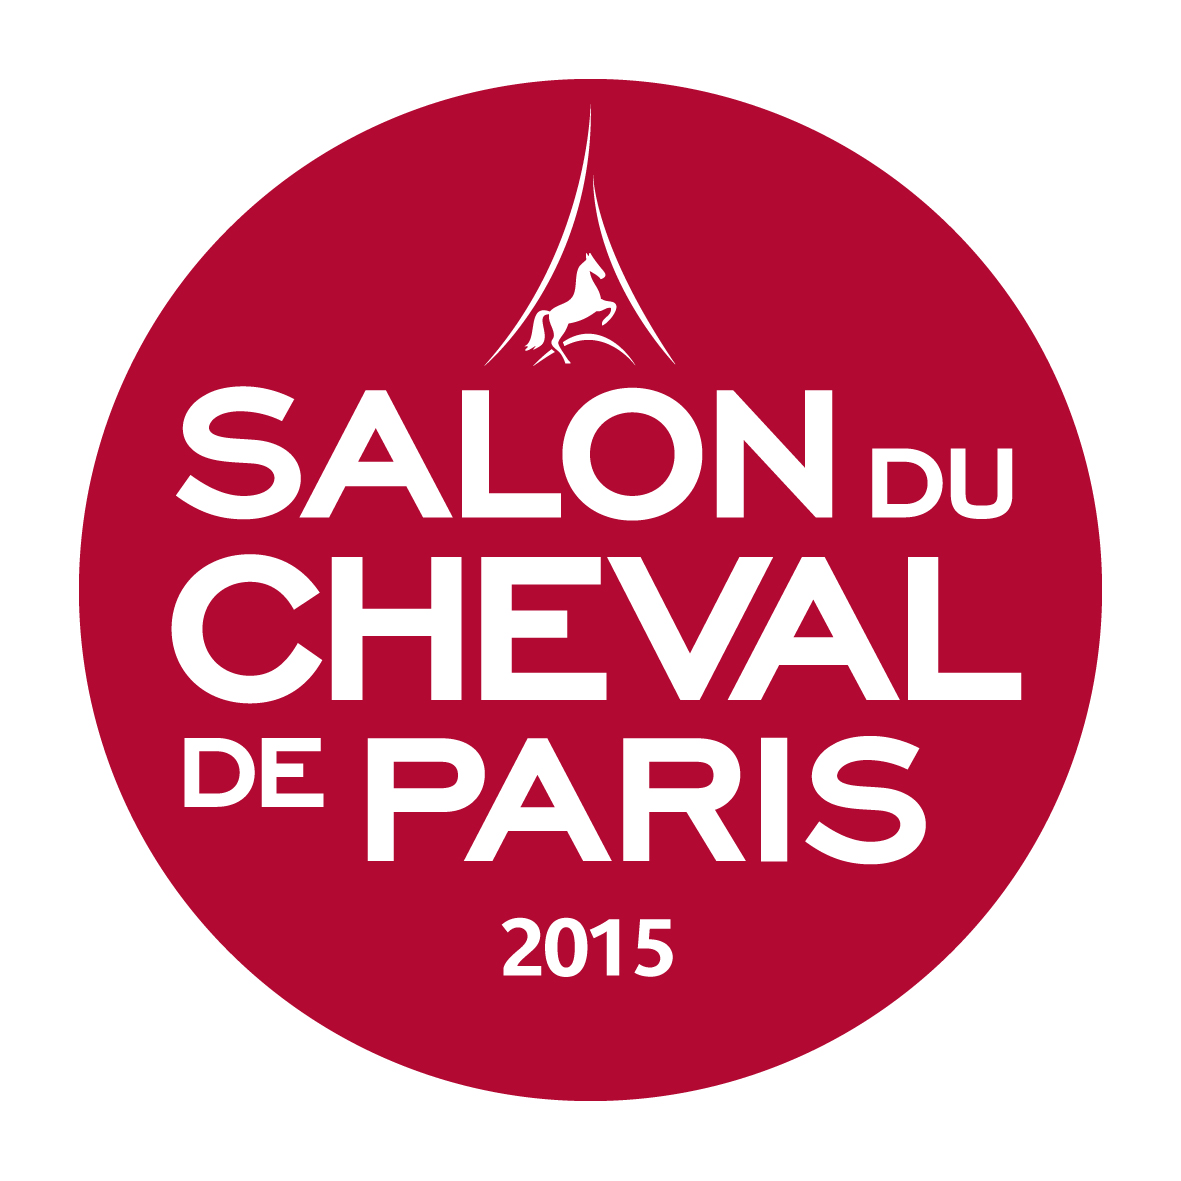 Salon du cheval de paris r servation logement paris nord - Salon de the paris 13 ...